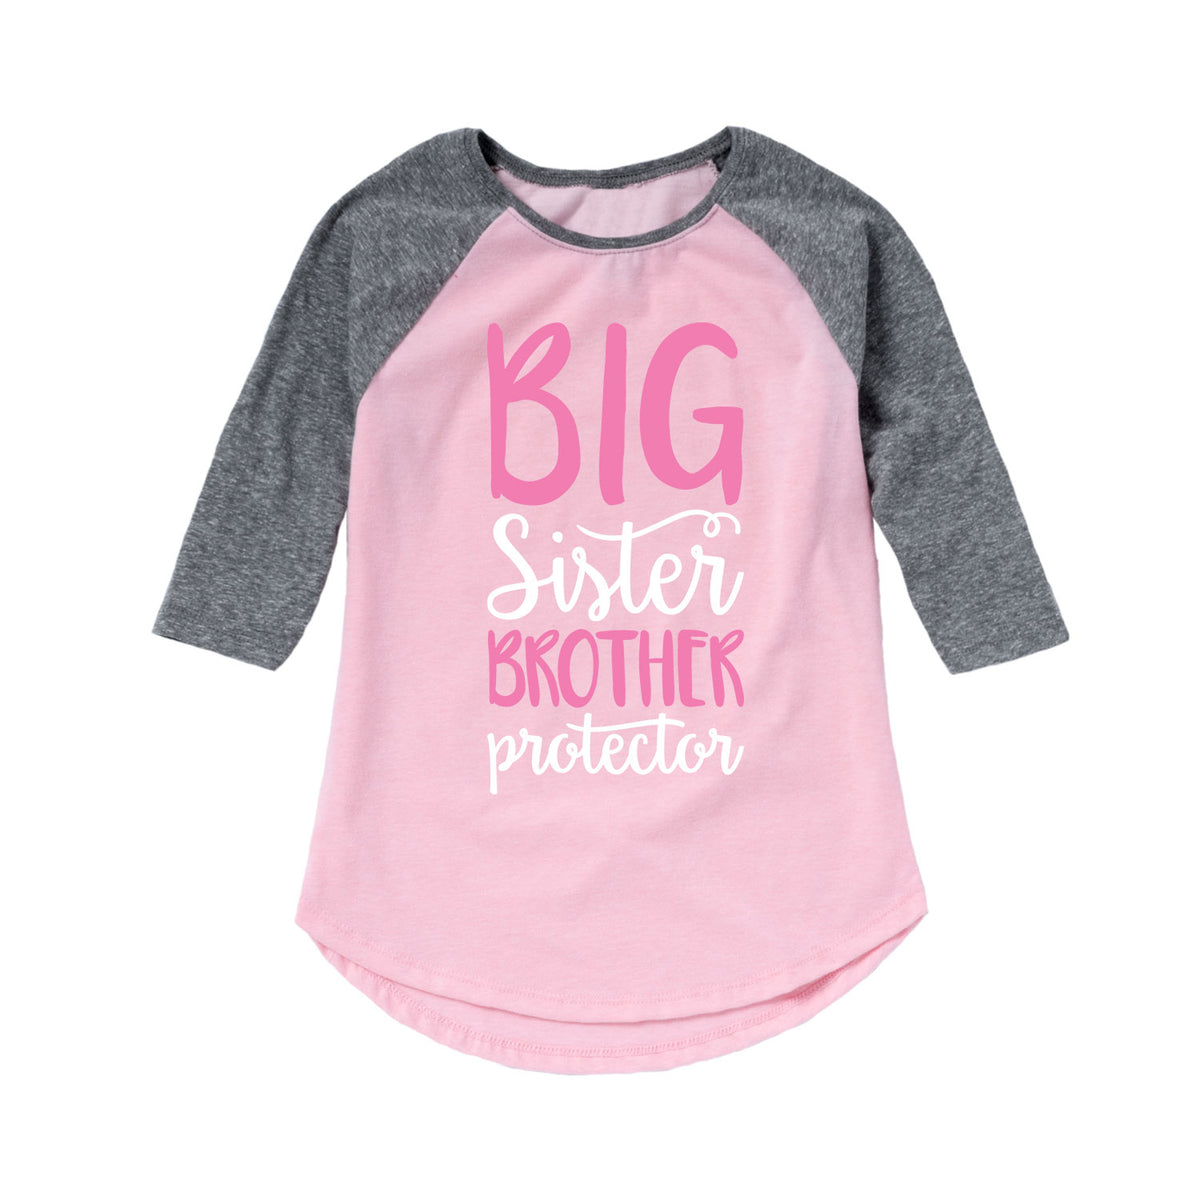 Big Sister Brother Protector - Youth & Toddler Girls Raglan